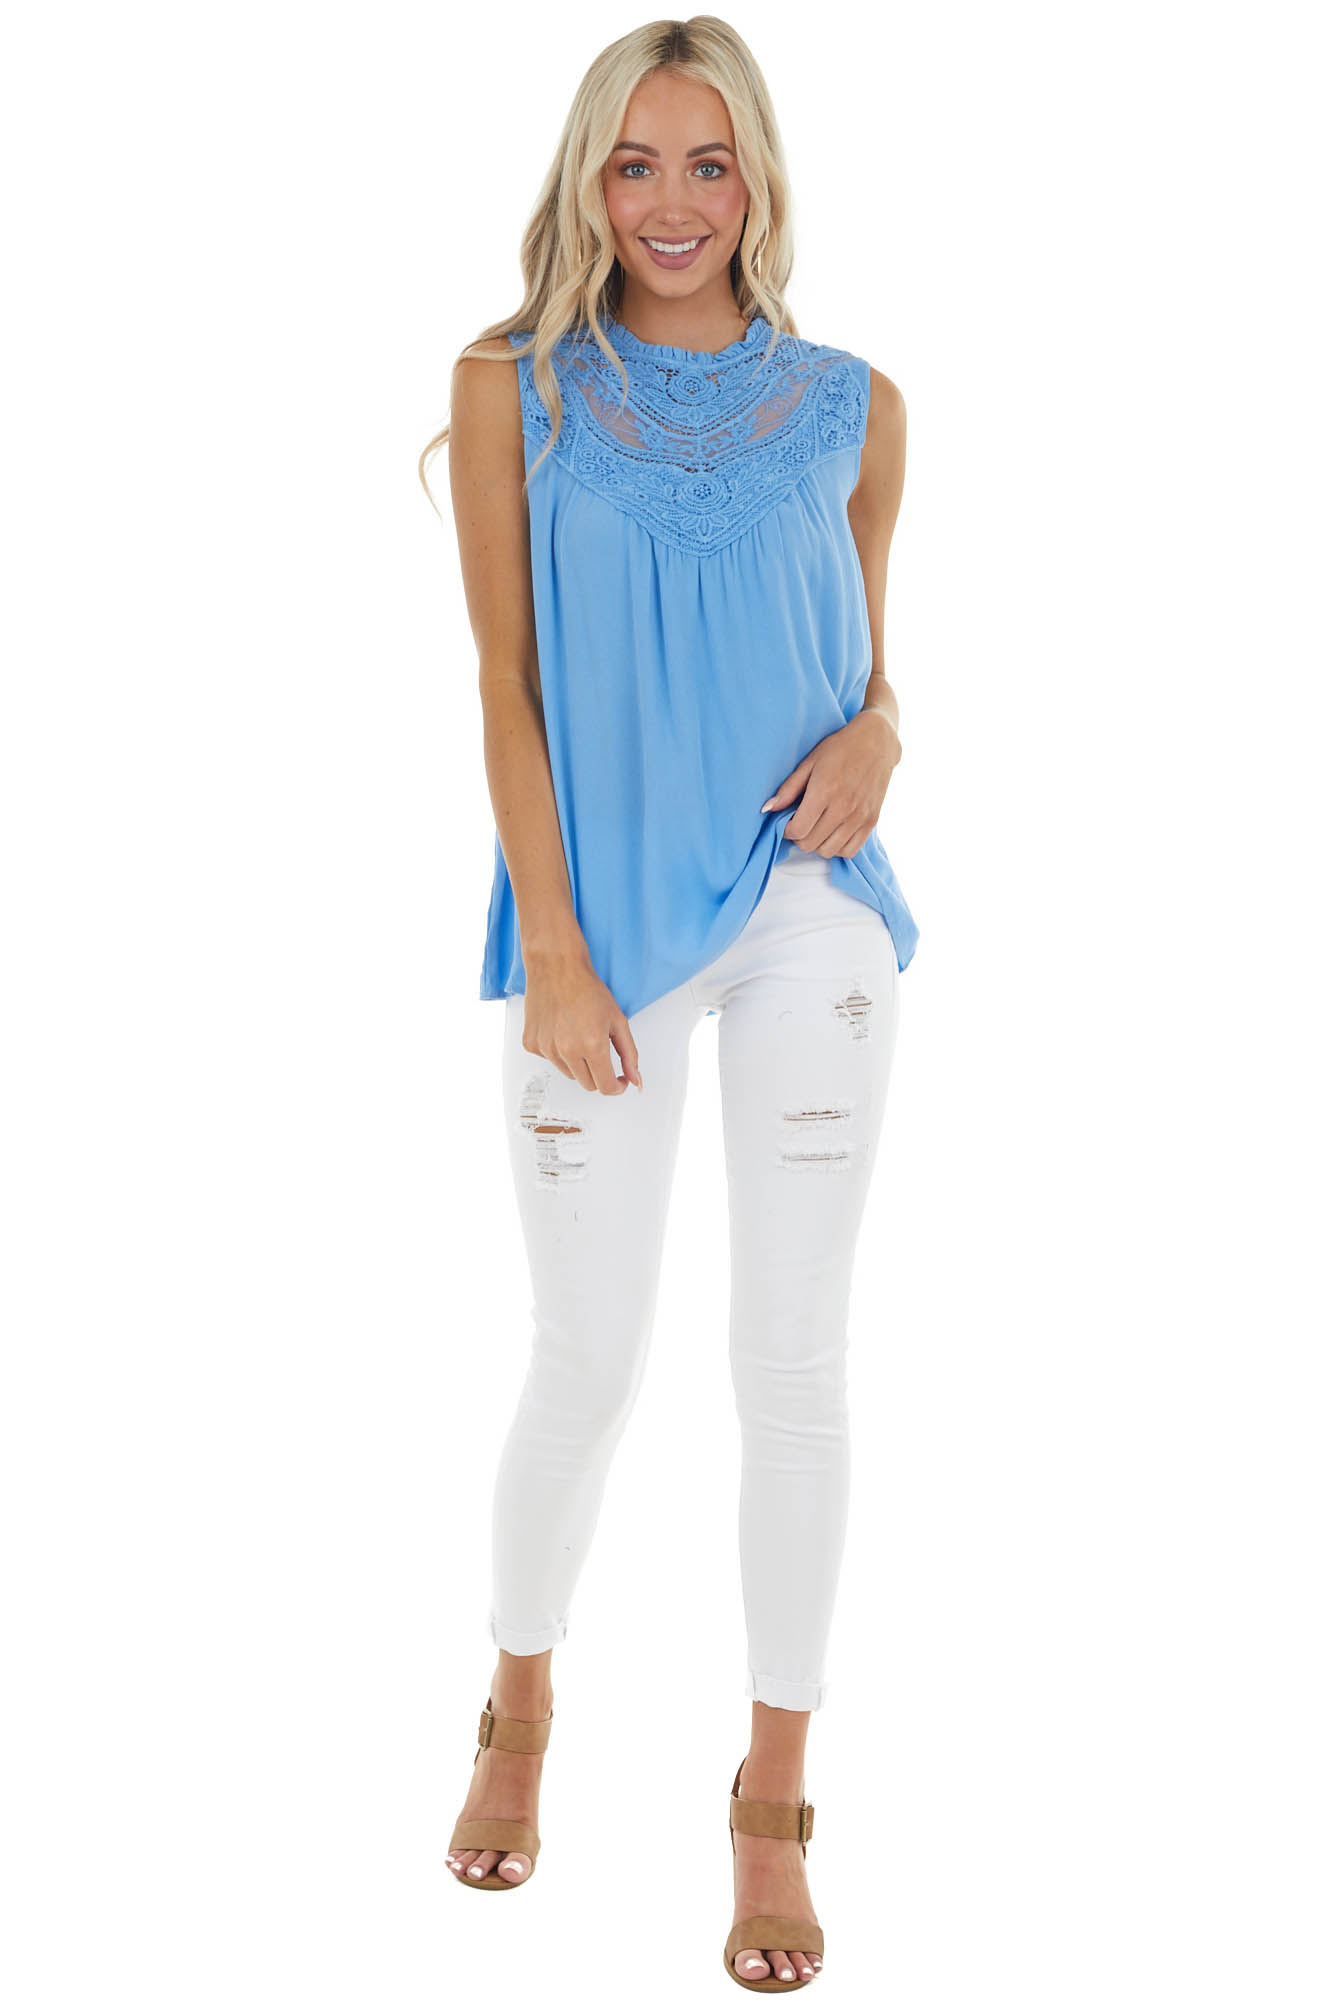 Light Saphire Sleeveless Top with Crocheted Neckline Detail